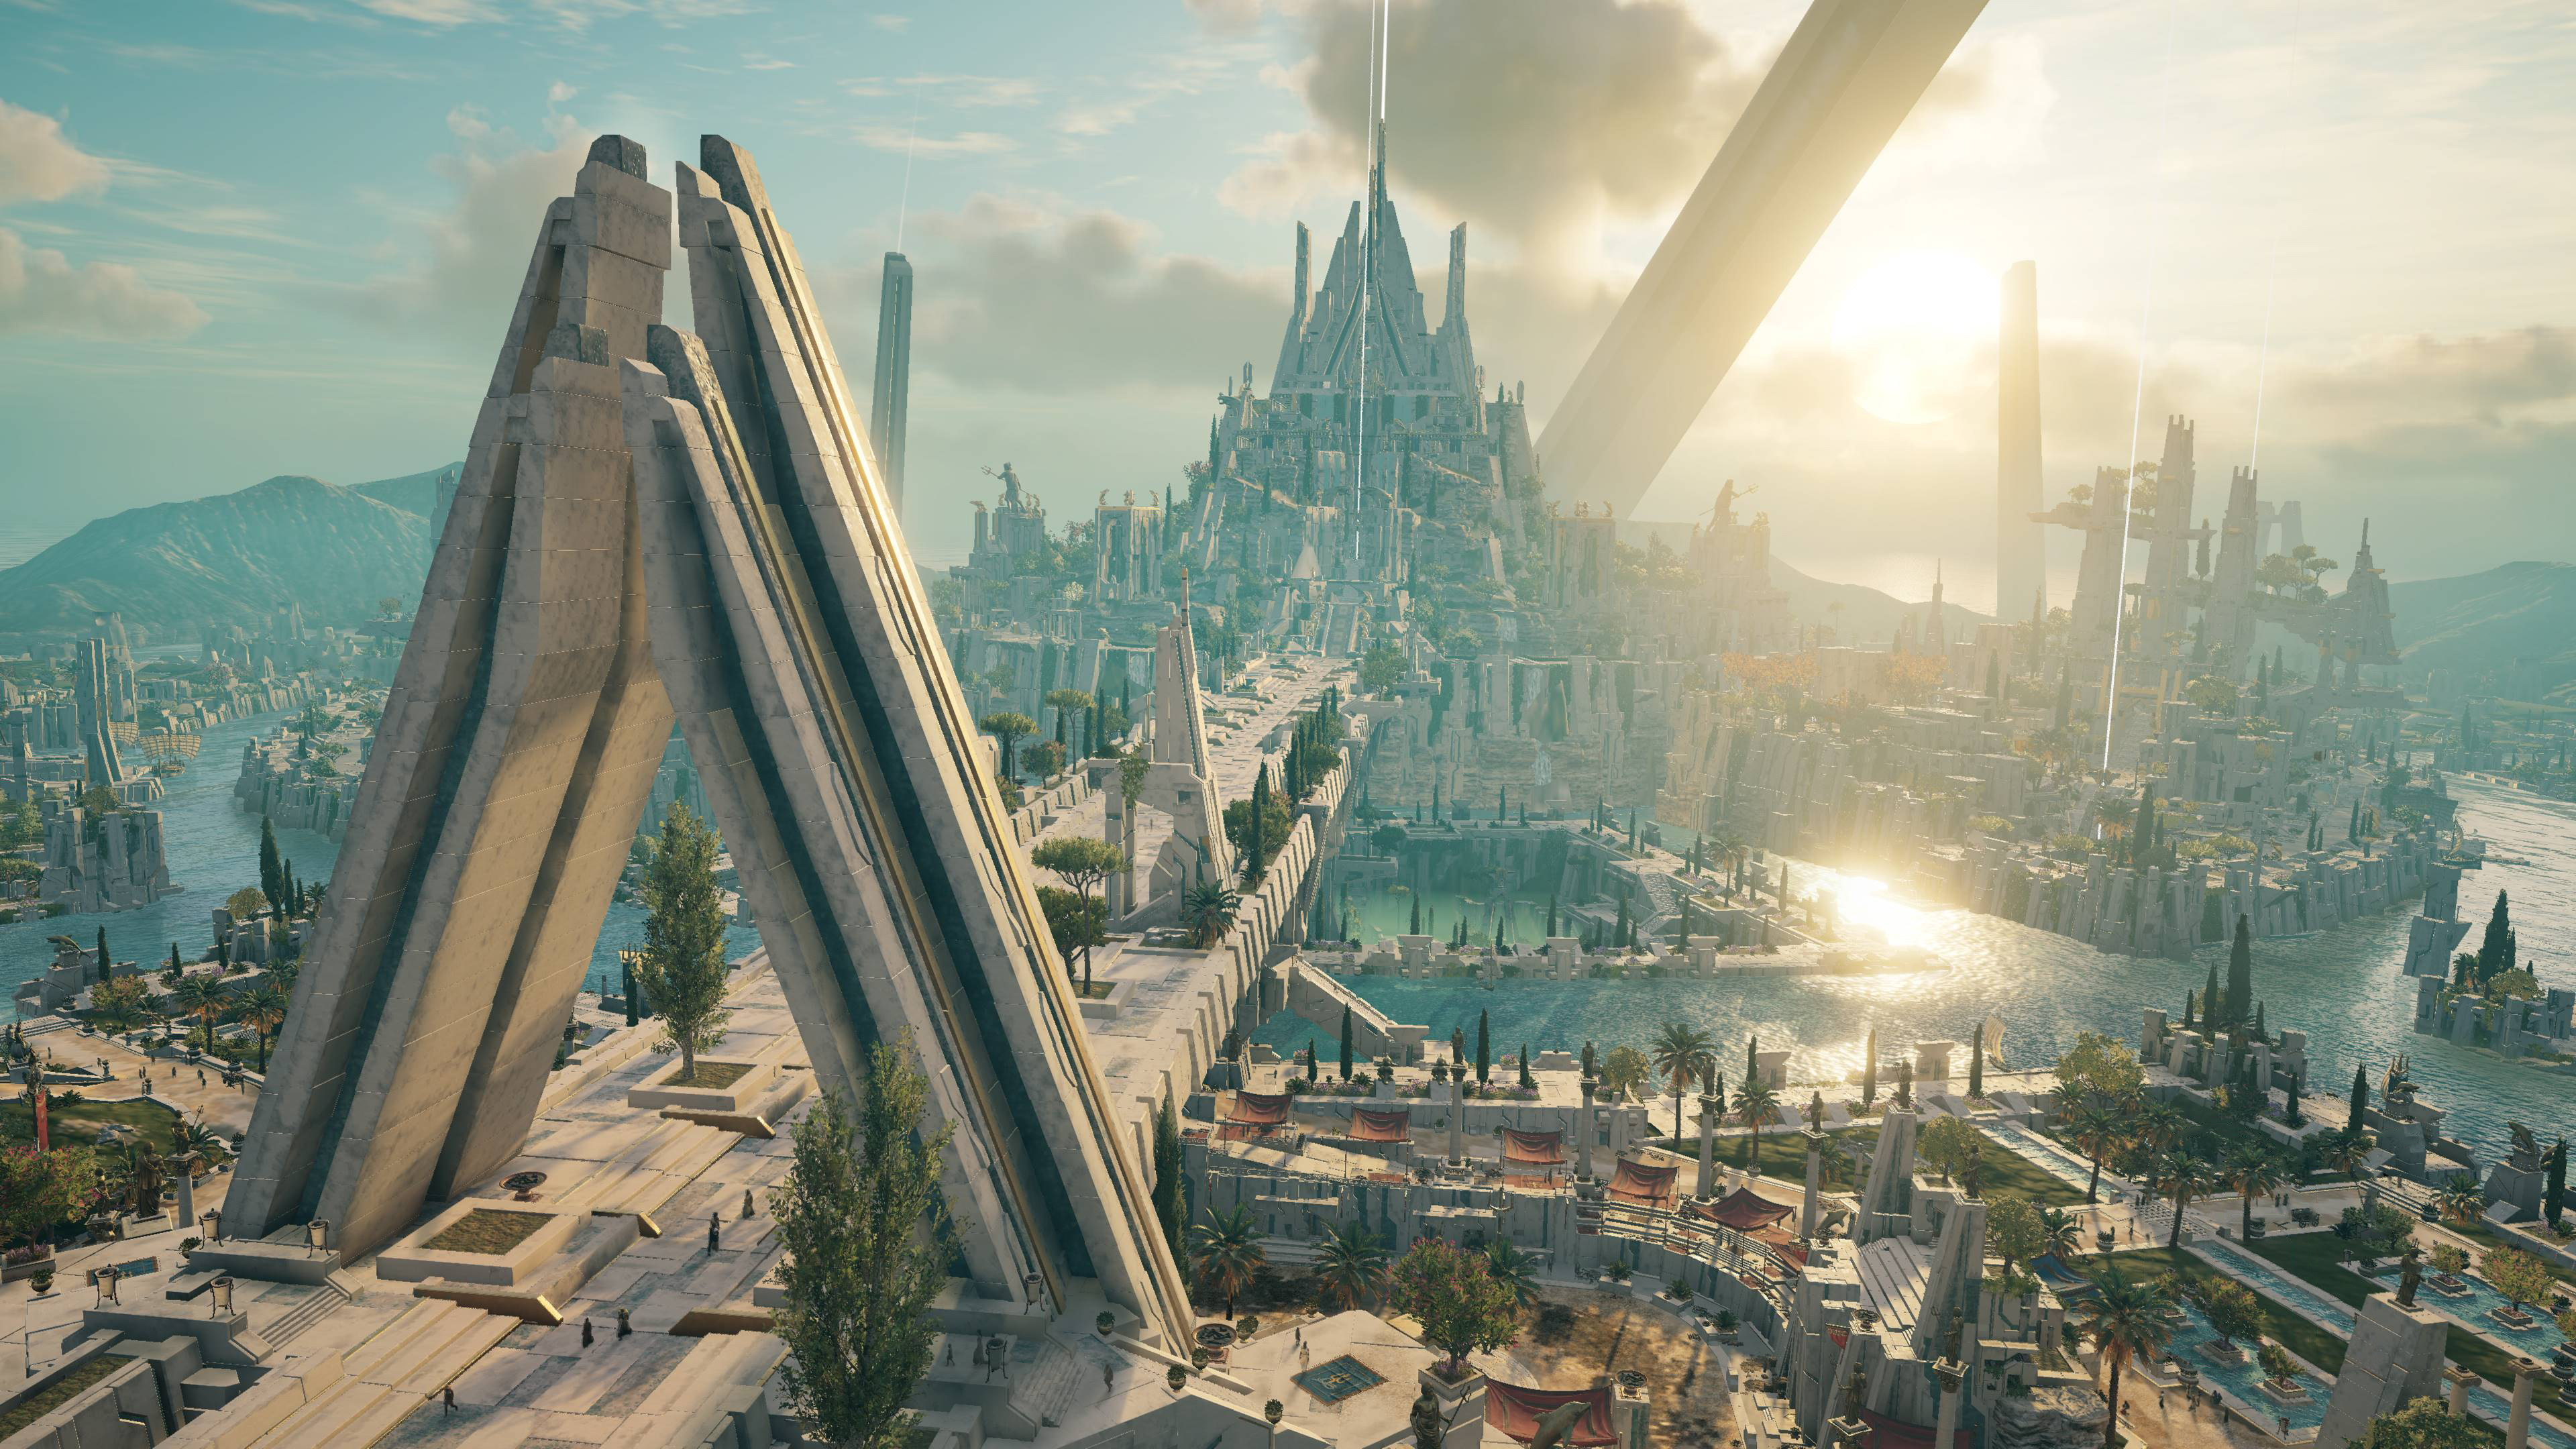 Atlantis In Assassins Creed Odyssey Wallpaper Hd Games 4k